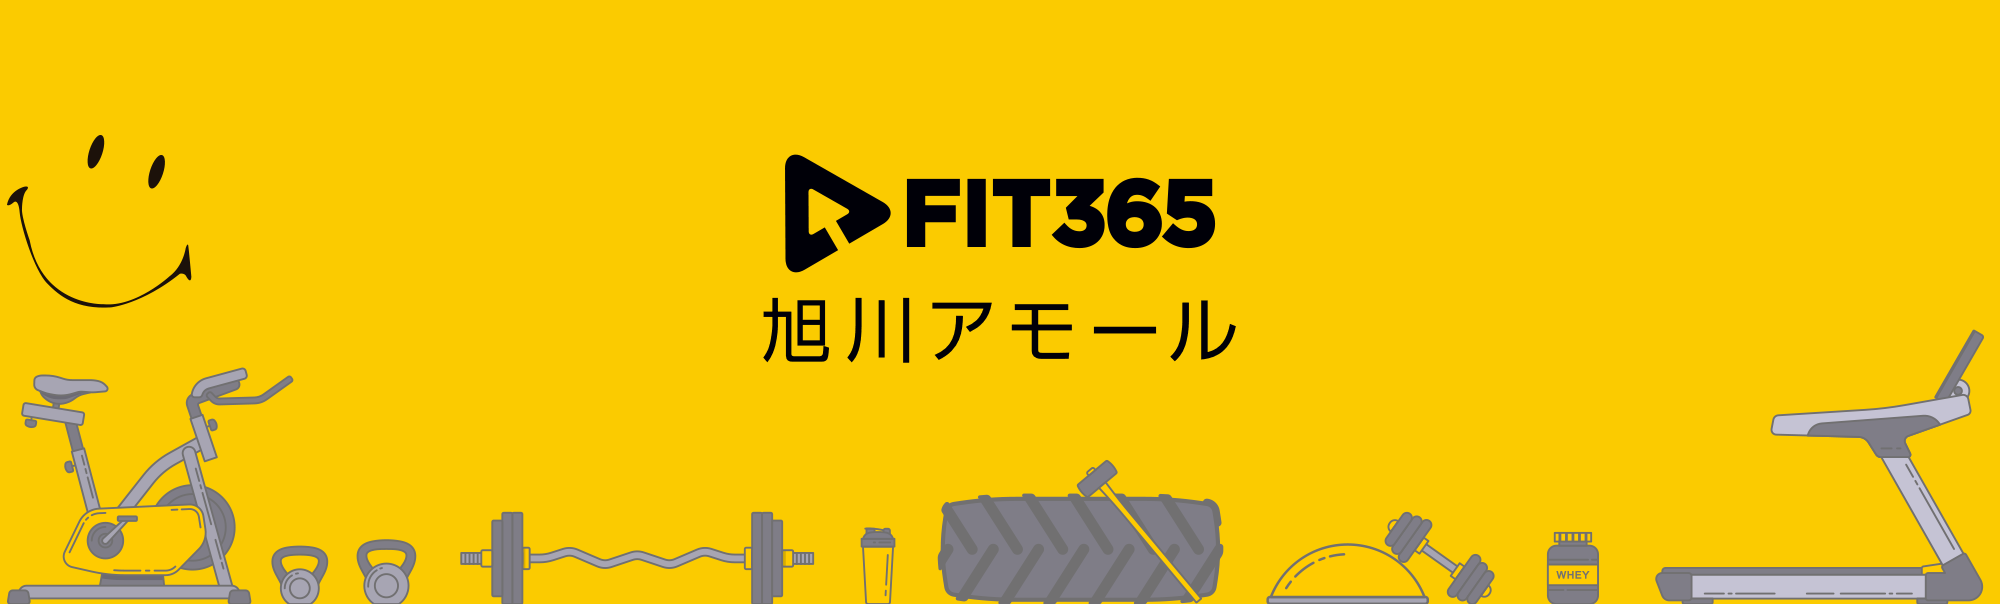 FIT365 旭川アモール